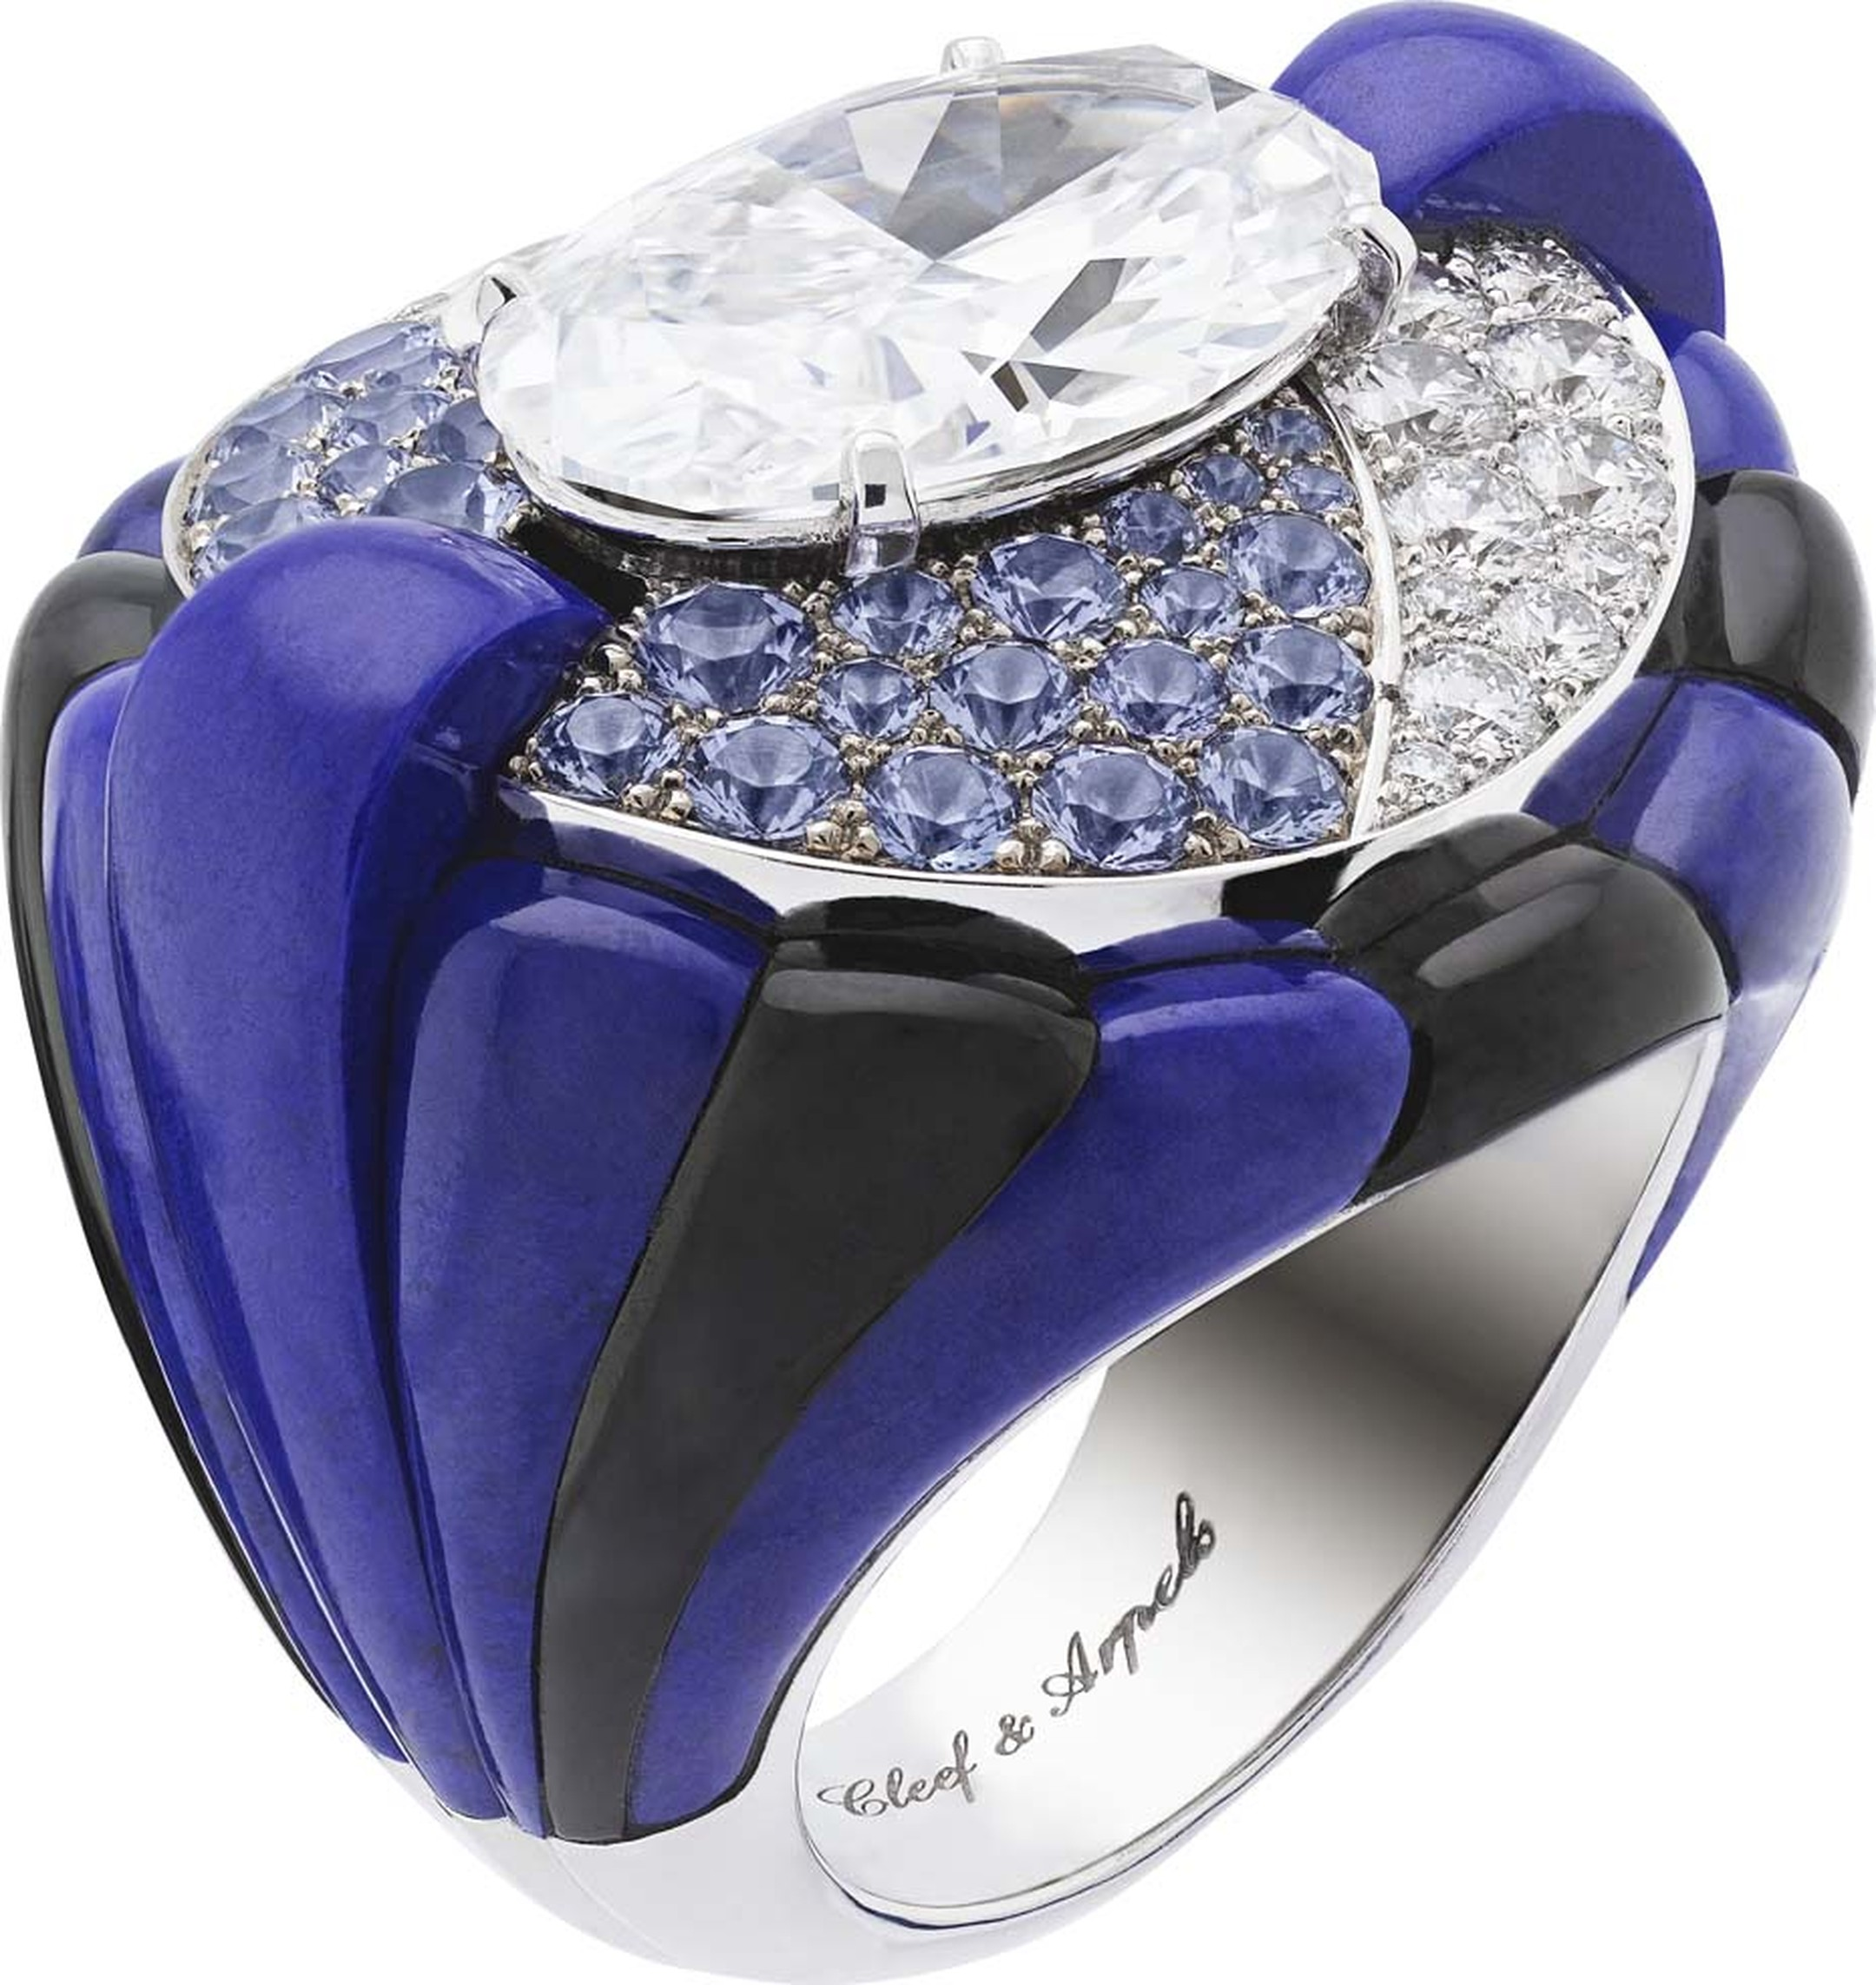 Van Cleef & Arpels Peau d'Âne collection Star of the Night white gold ring with lapis lazuli, onyx, diamonds, tanzanite and a central 5.75ct oval diamond.